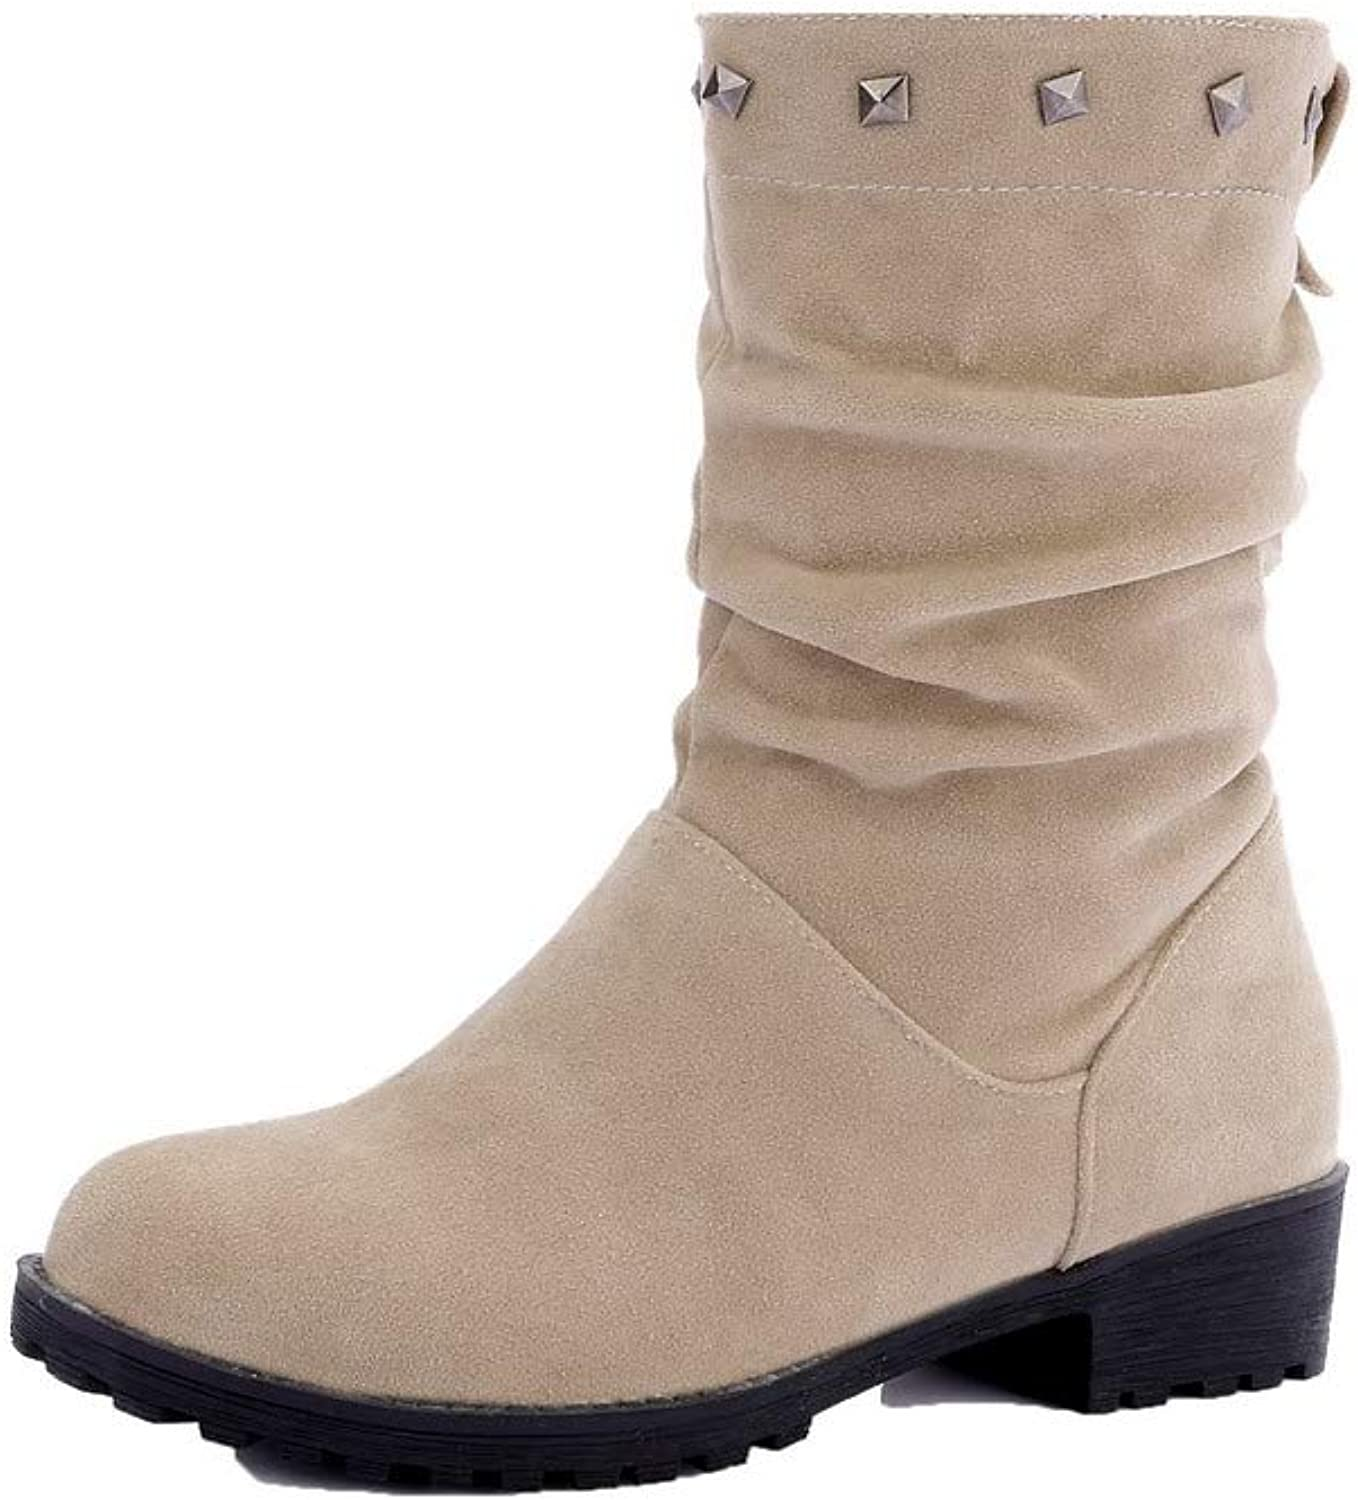 AmoonyFashion Women's Frosted Low-Top Solid Pull-On Low-Heels Boots, BUTXT011443